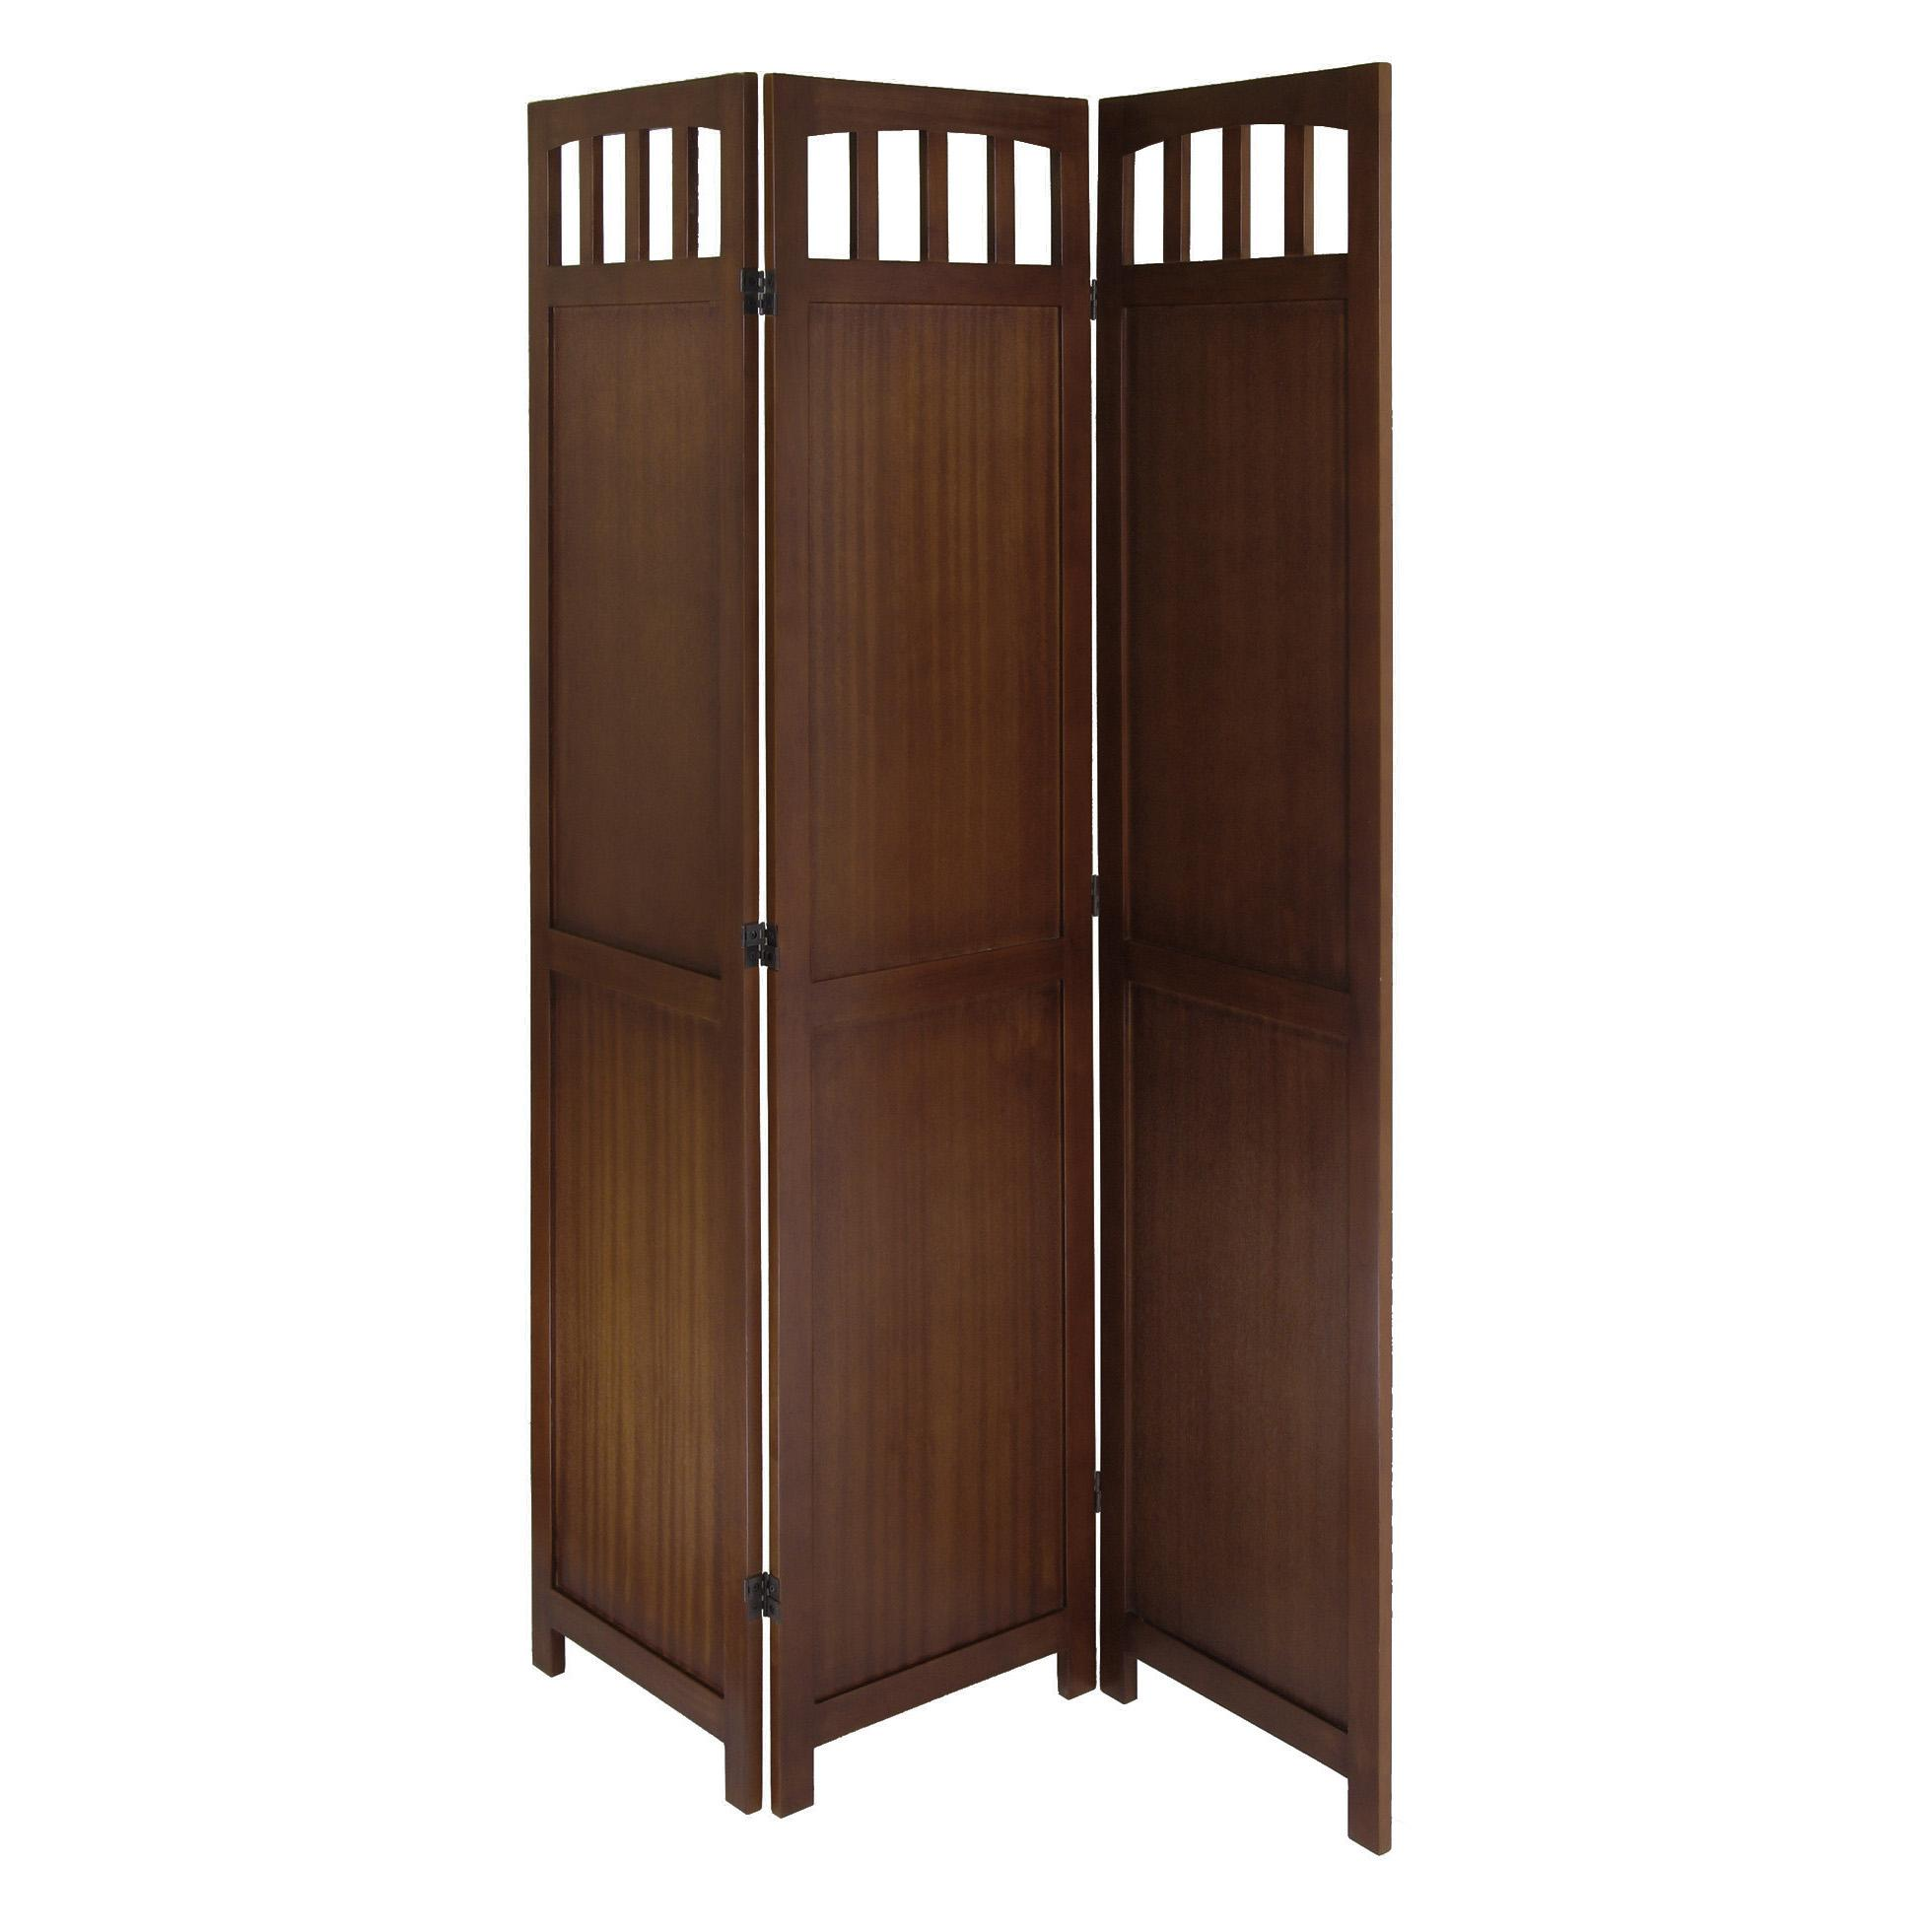 Amazon.com: Winsome Wood 3-Panel Wood Folding Screen: Kitchen & Dining